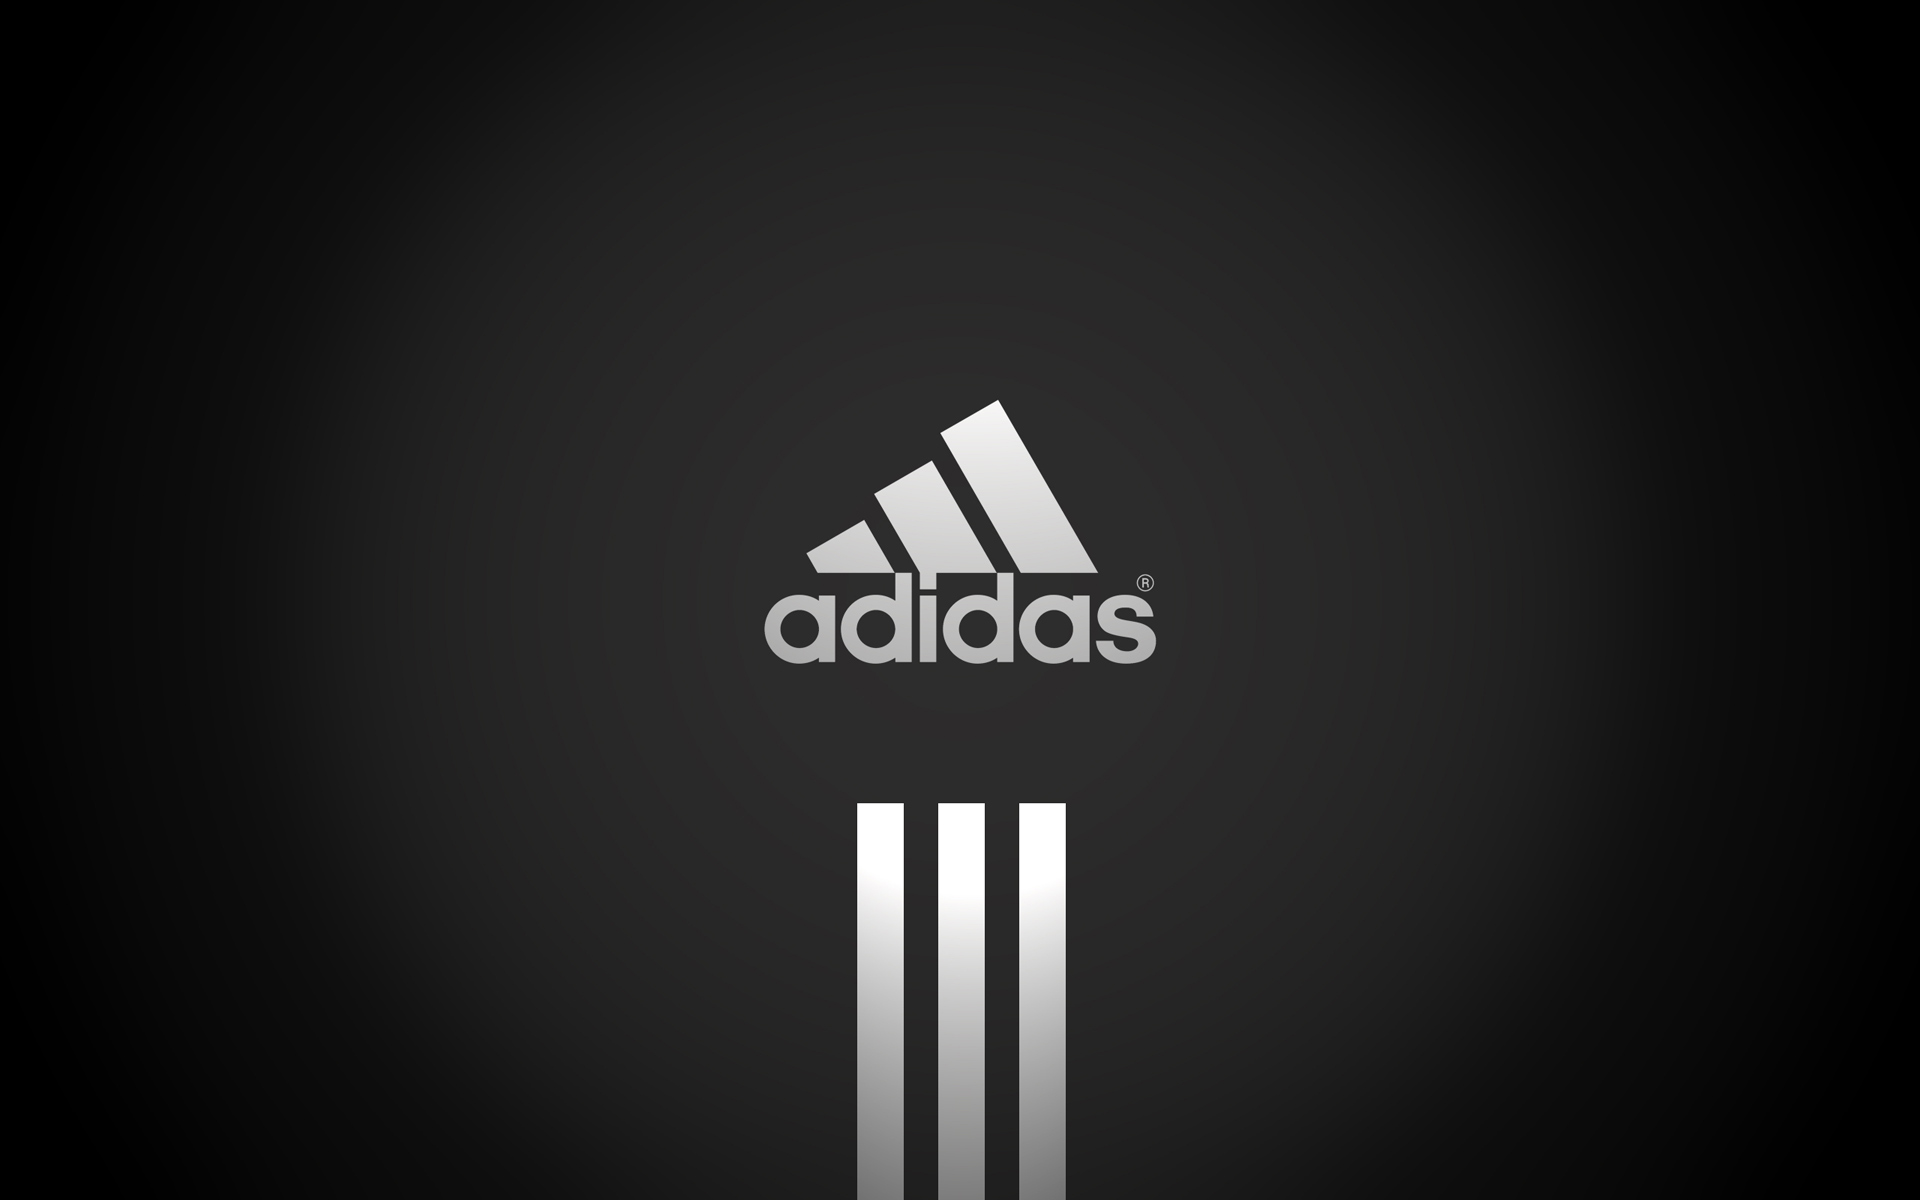 sports logo wallpapers group 70